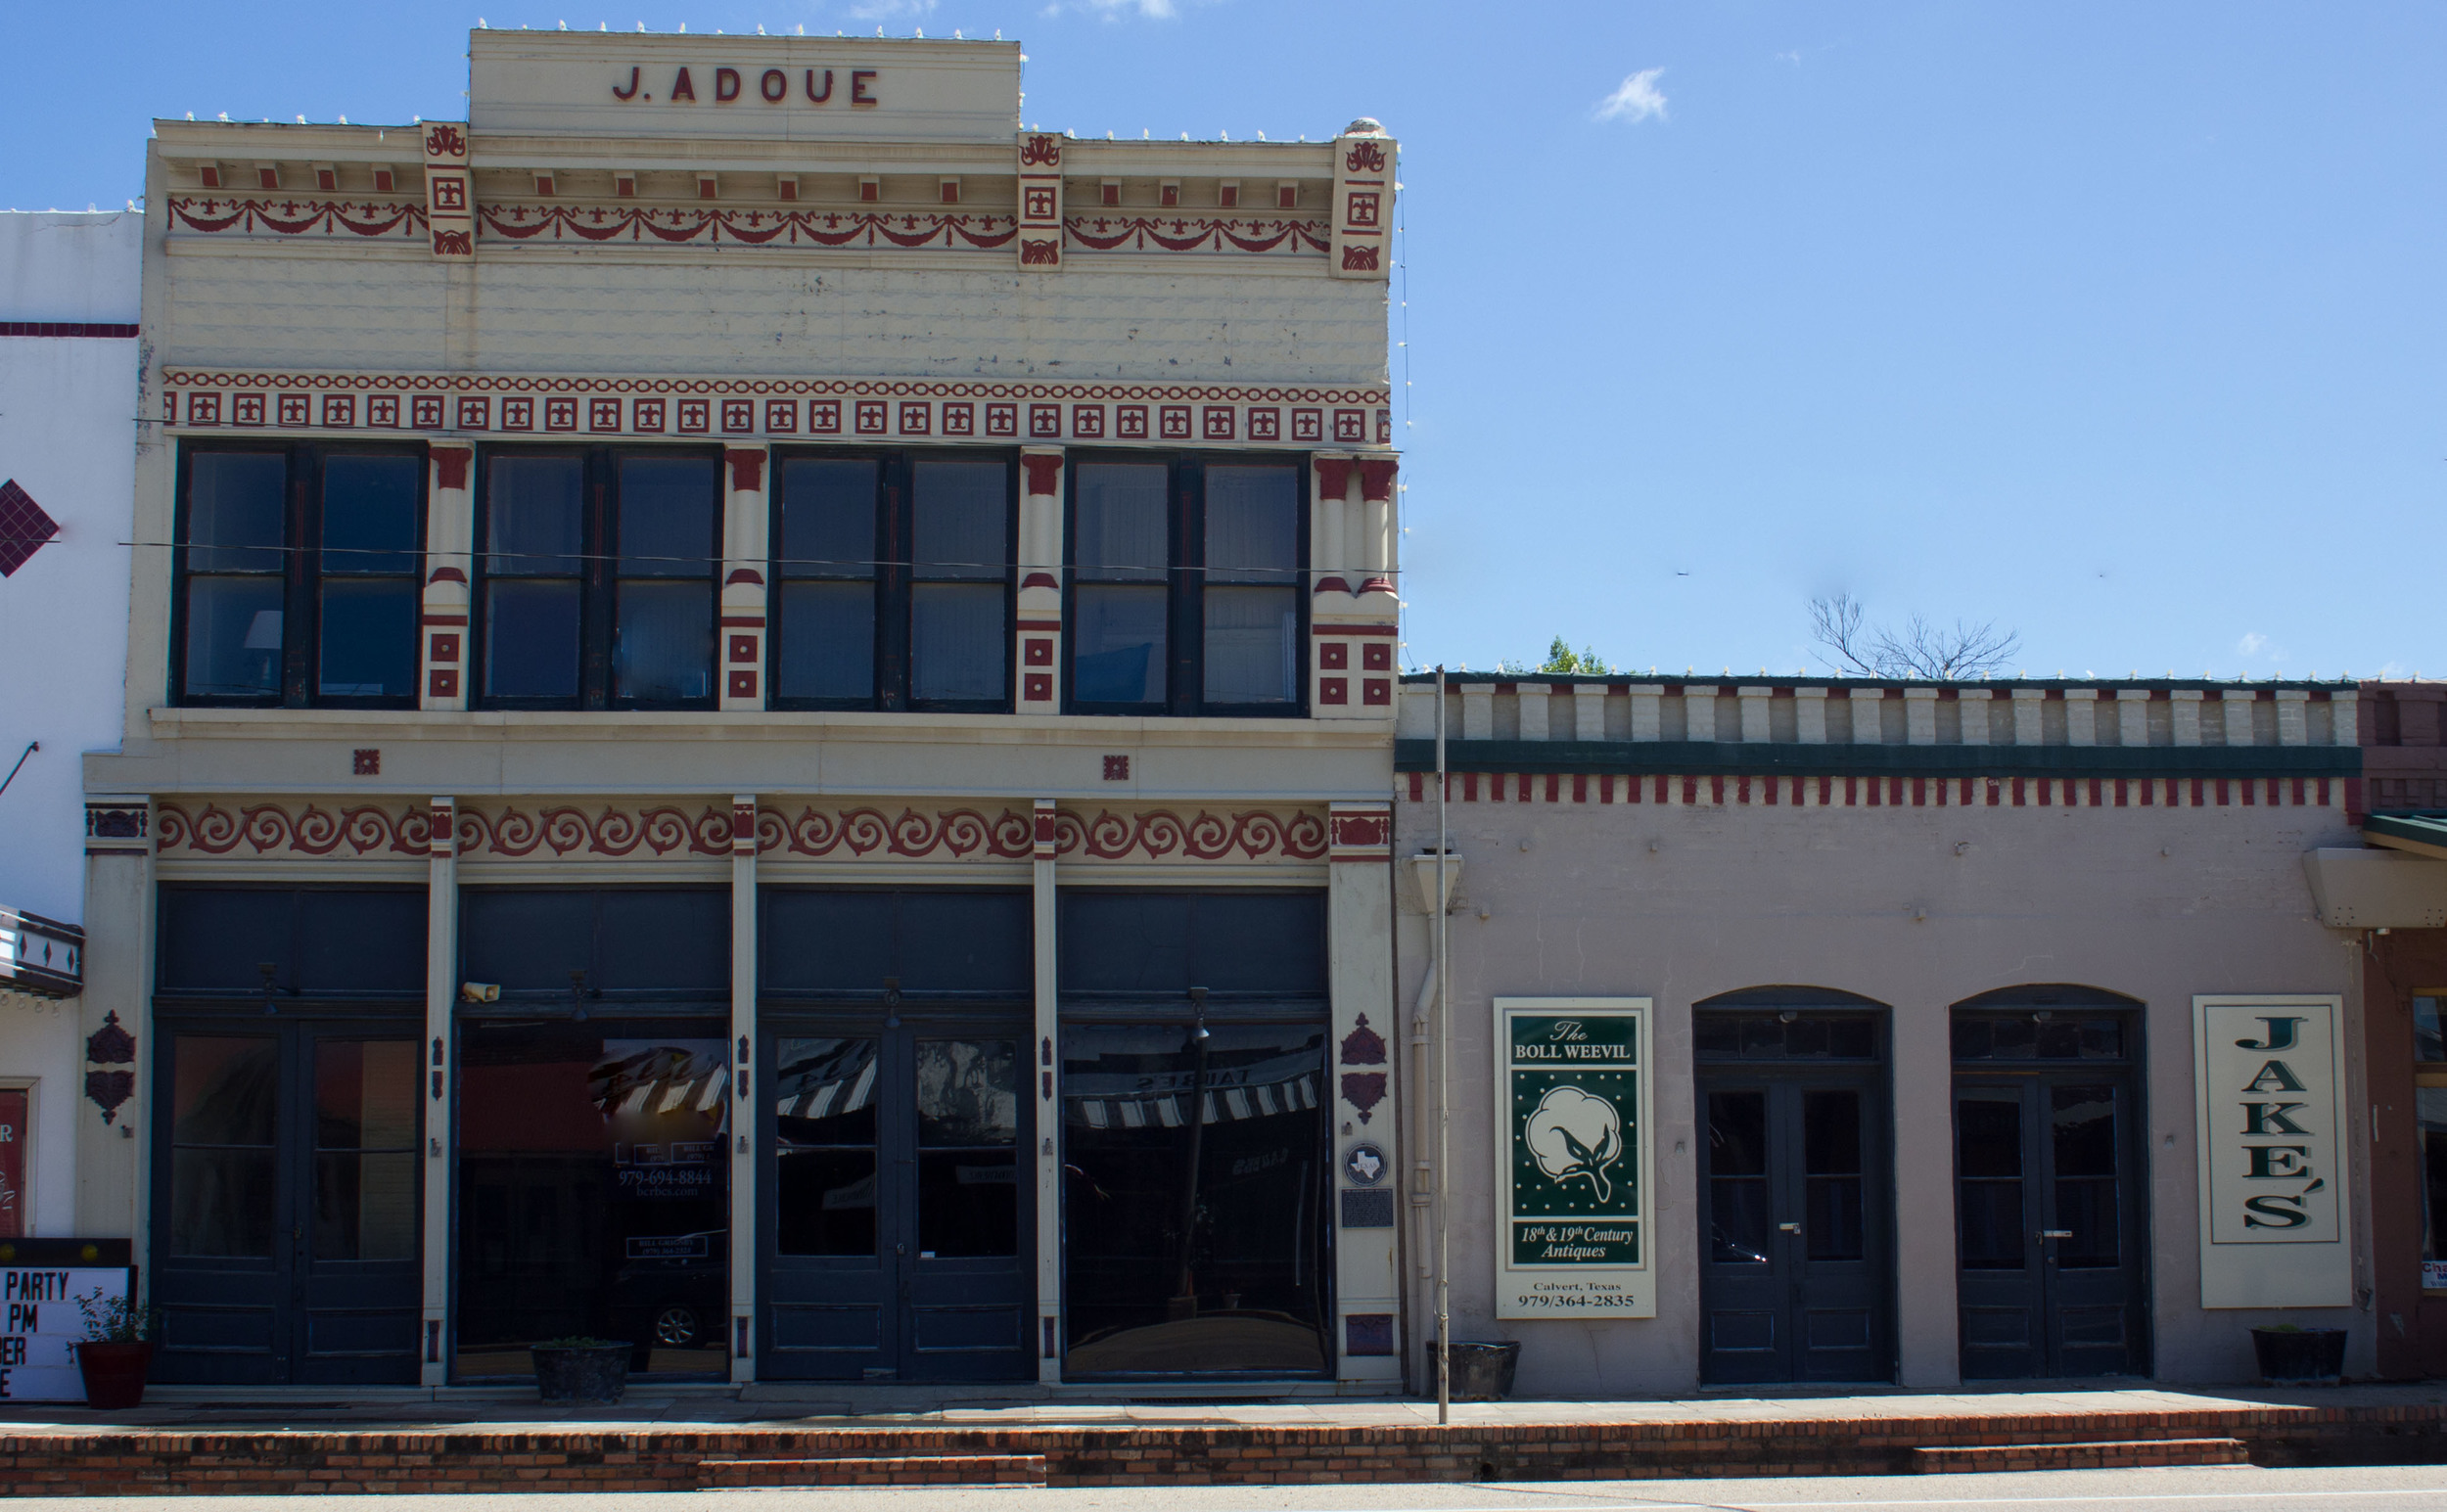 JAKE'S SALOON AND ADOUE BUILDING